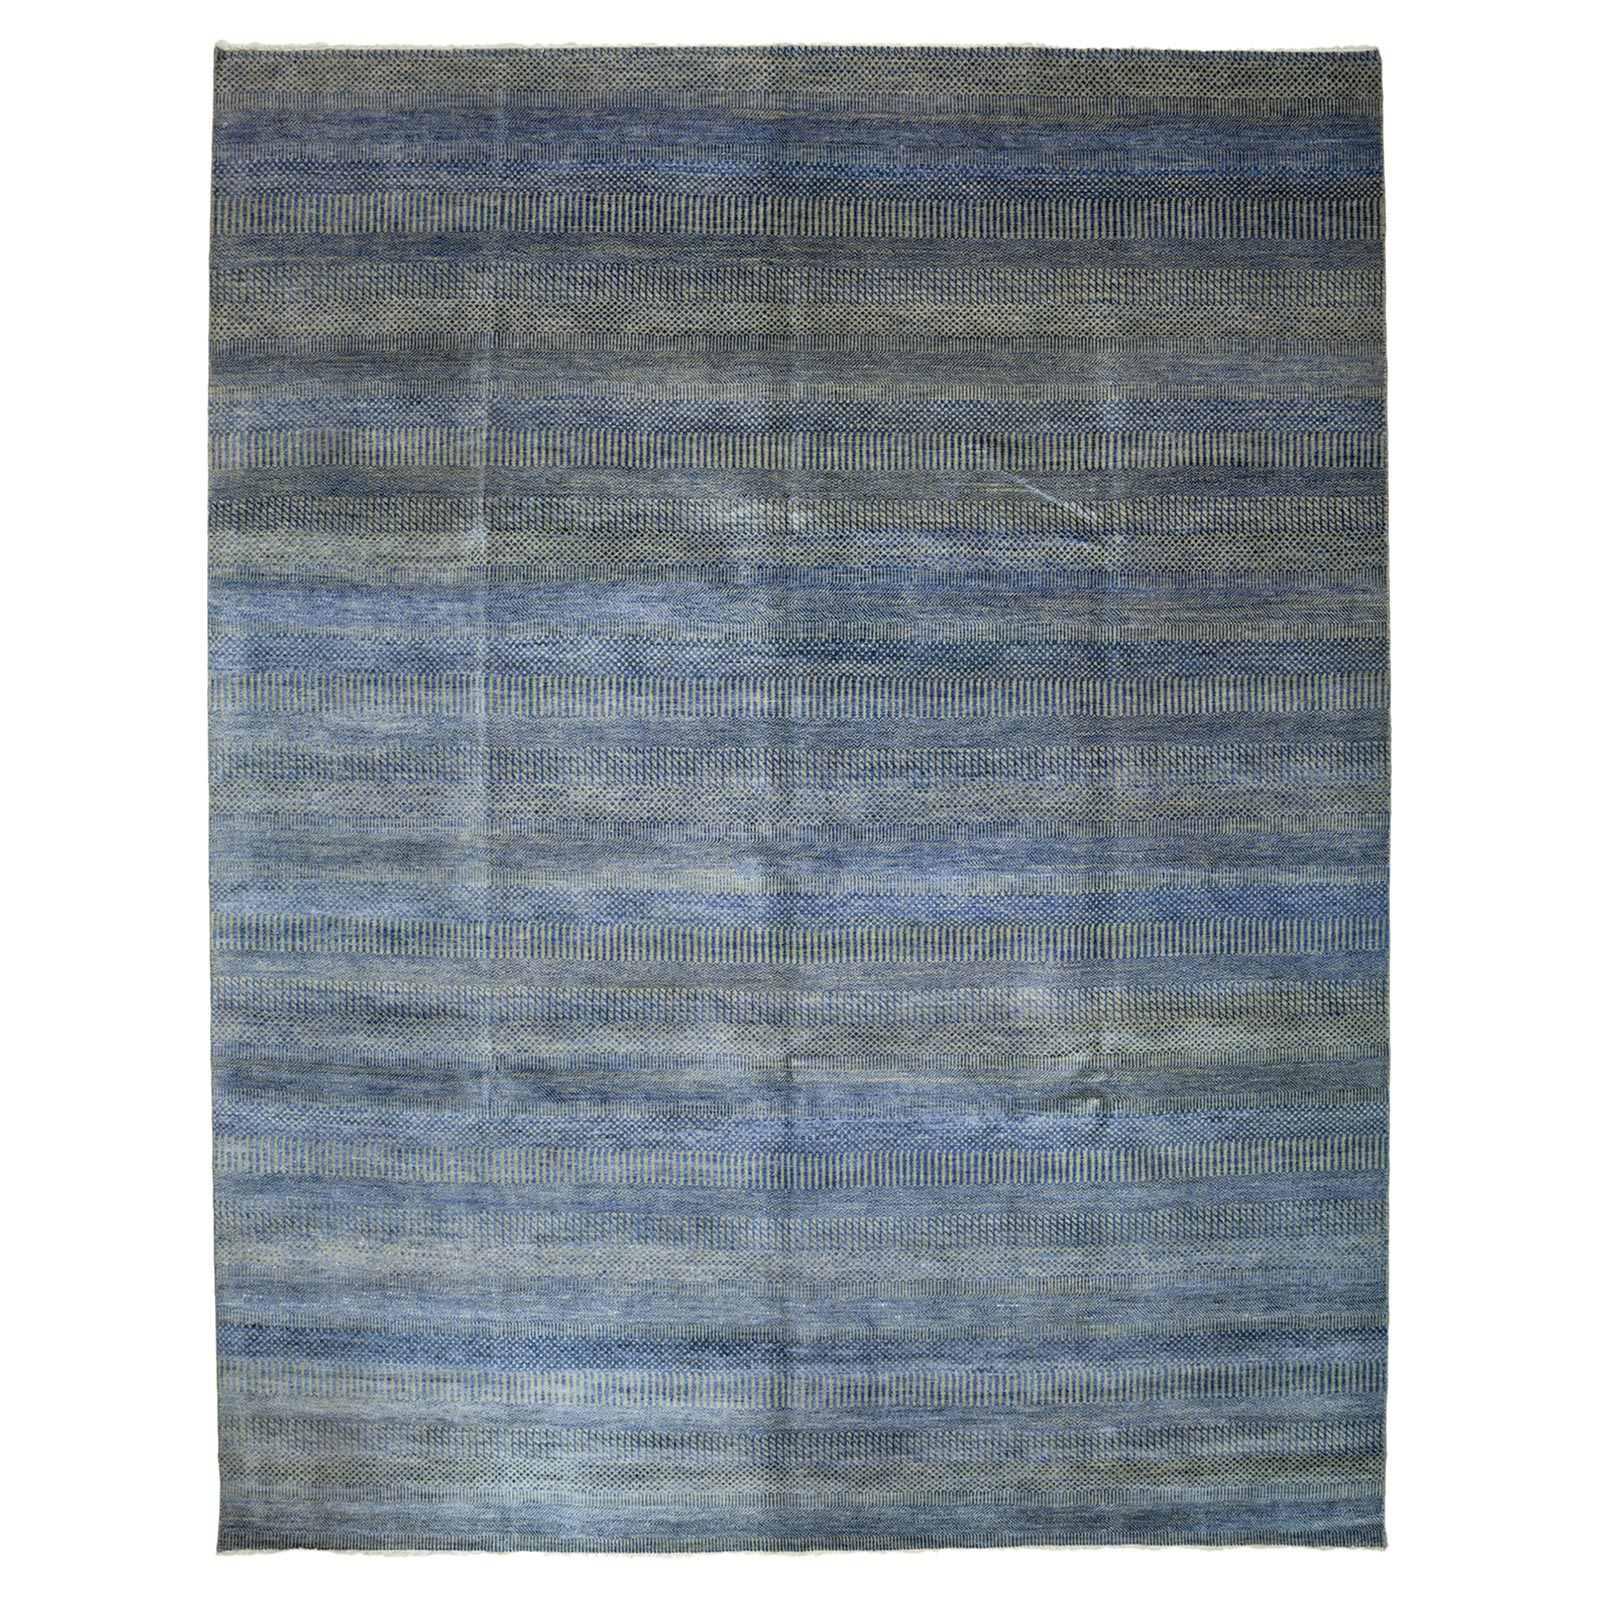 Frazier Blue Sage Small Pattern Wool Rug - 9'2 x 11'8